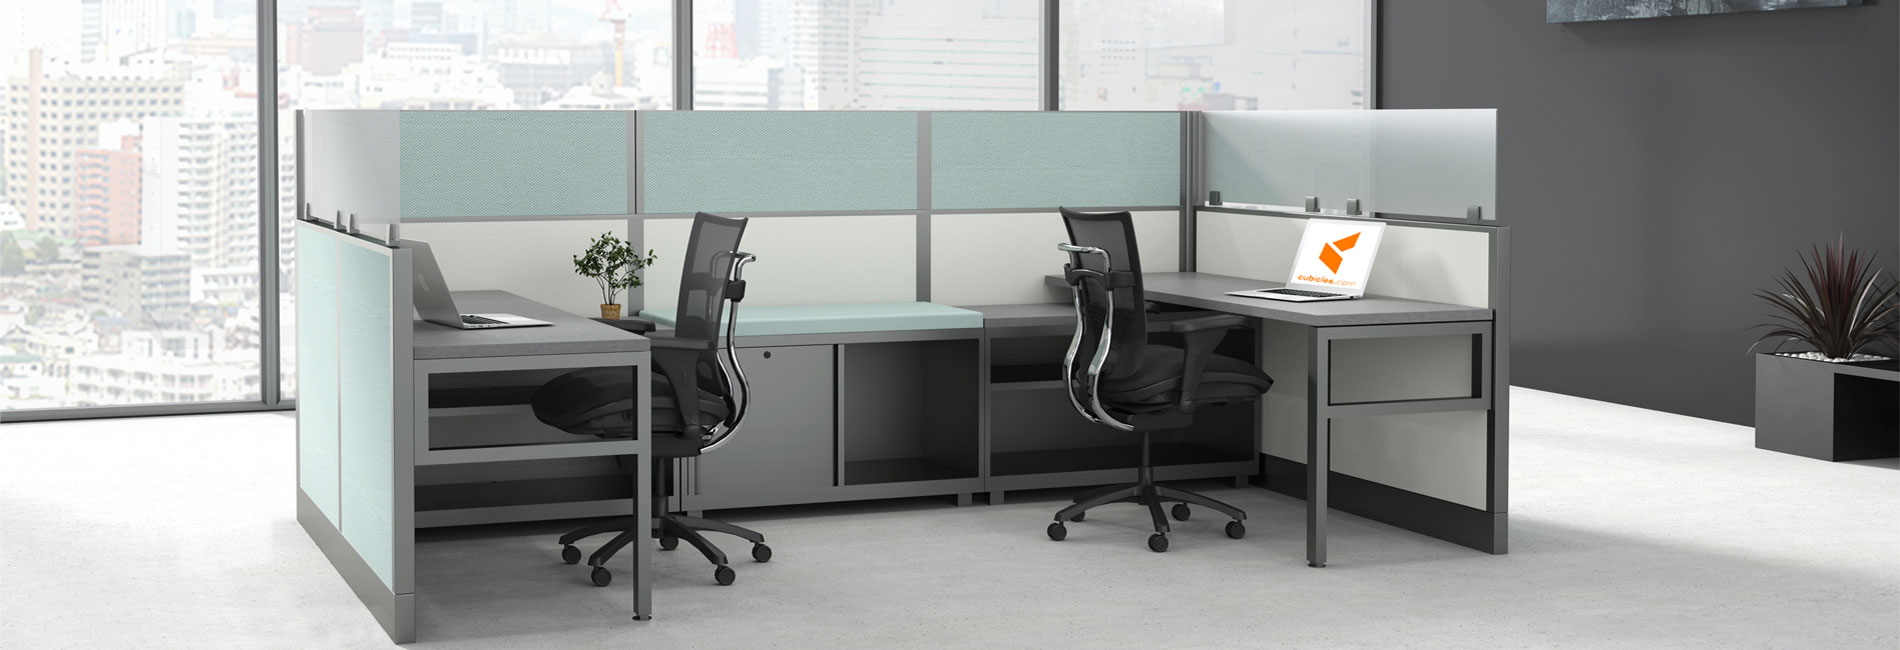 Designer Office Furniture O2 Series Corporate Office Furniture